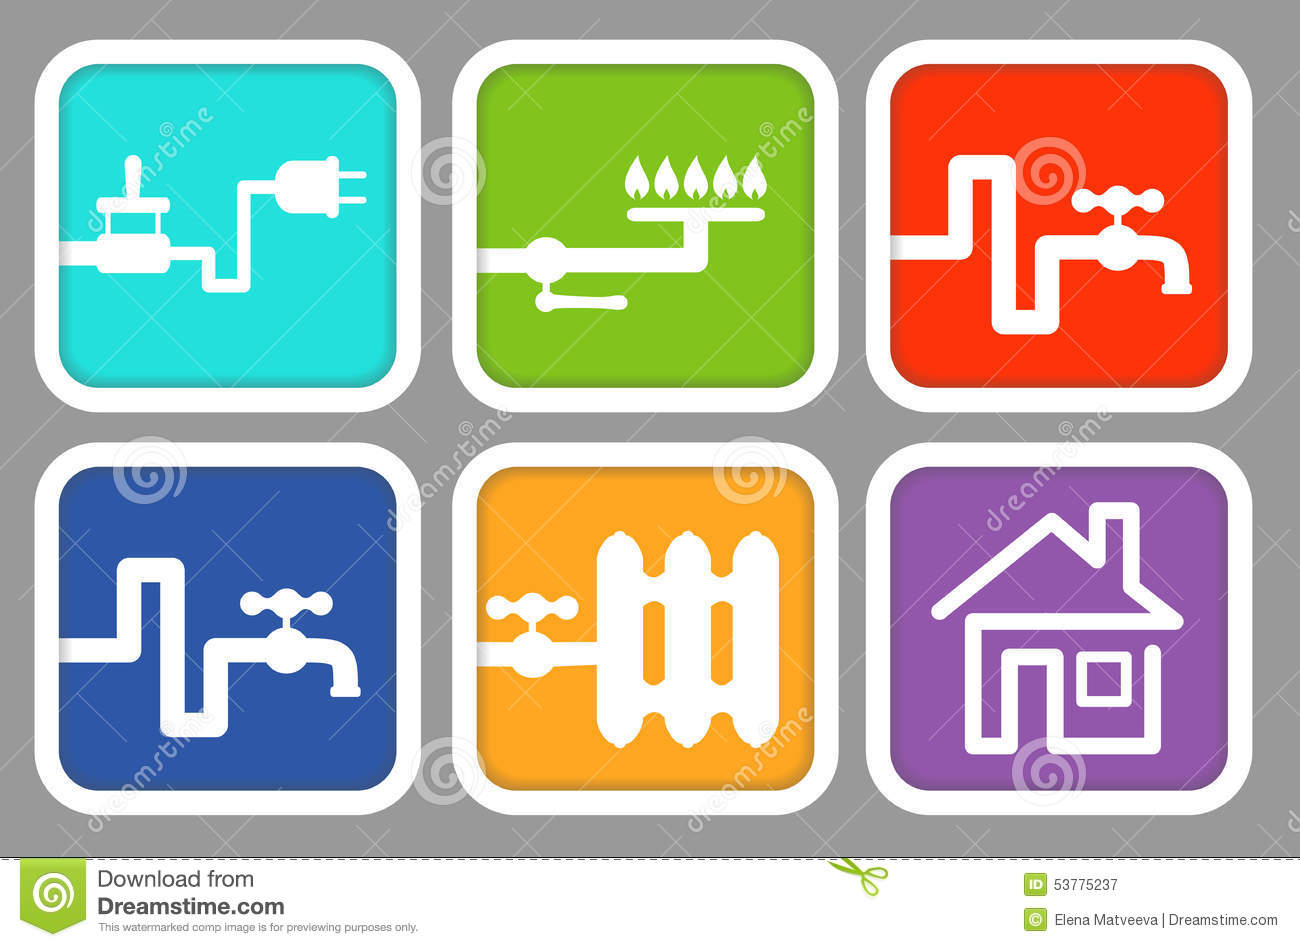 Icons Utility Meters: Electricity, Gas, Cold Water, Hot Water.